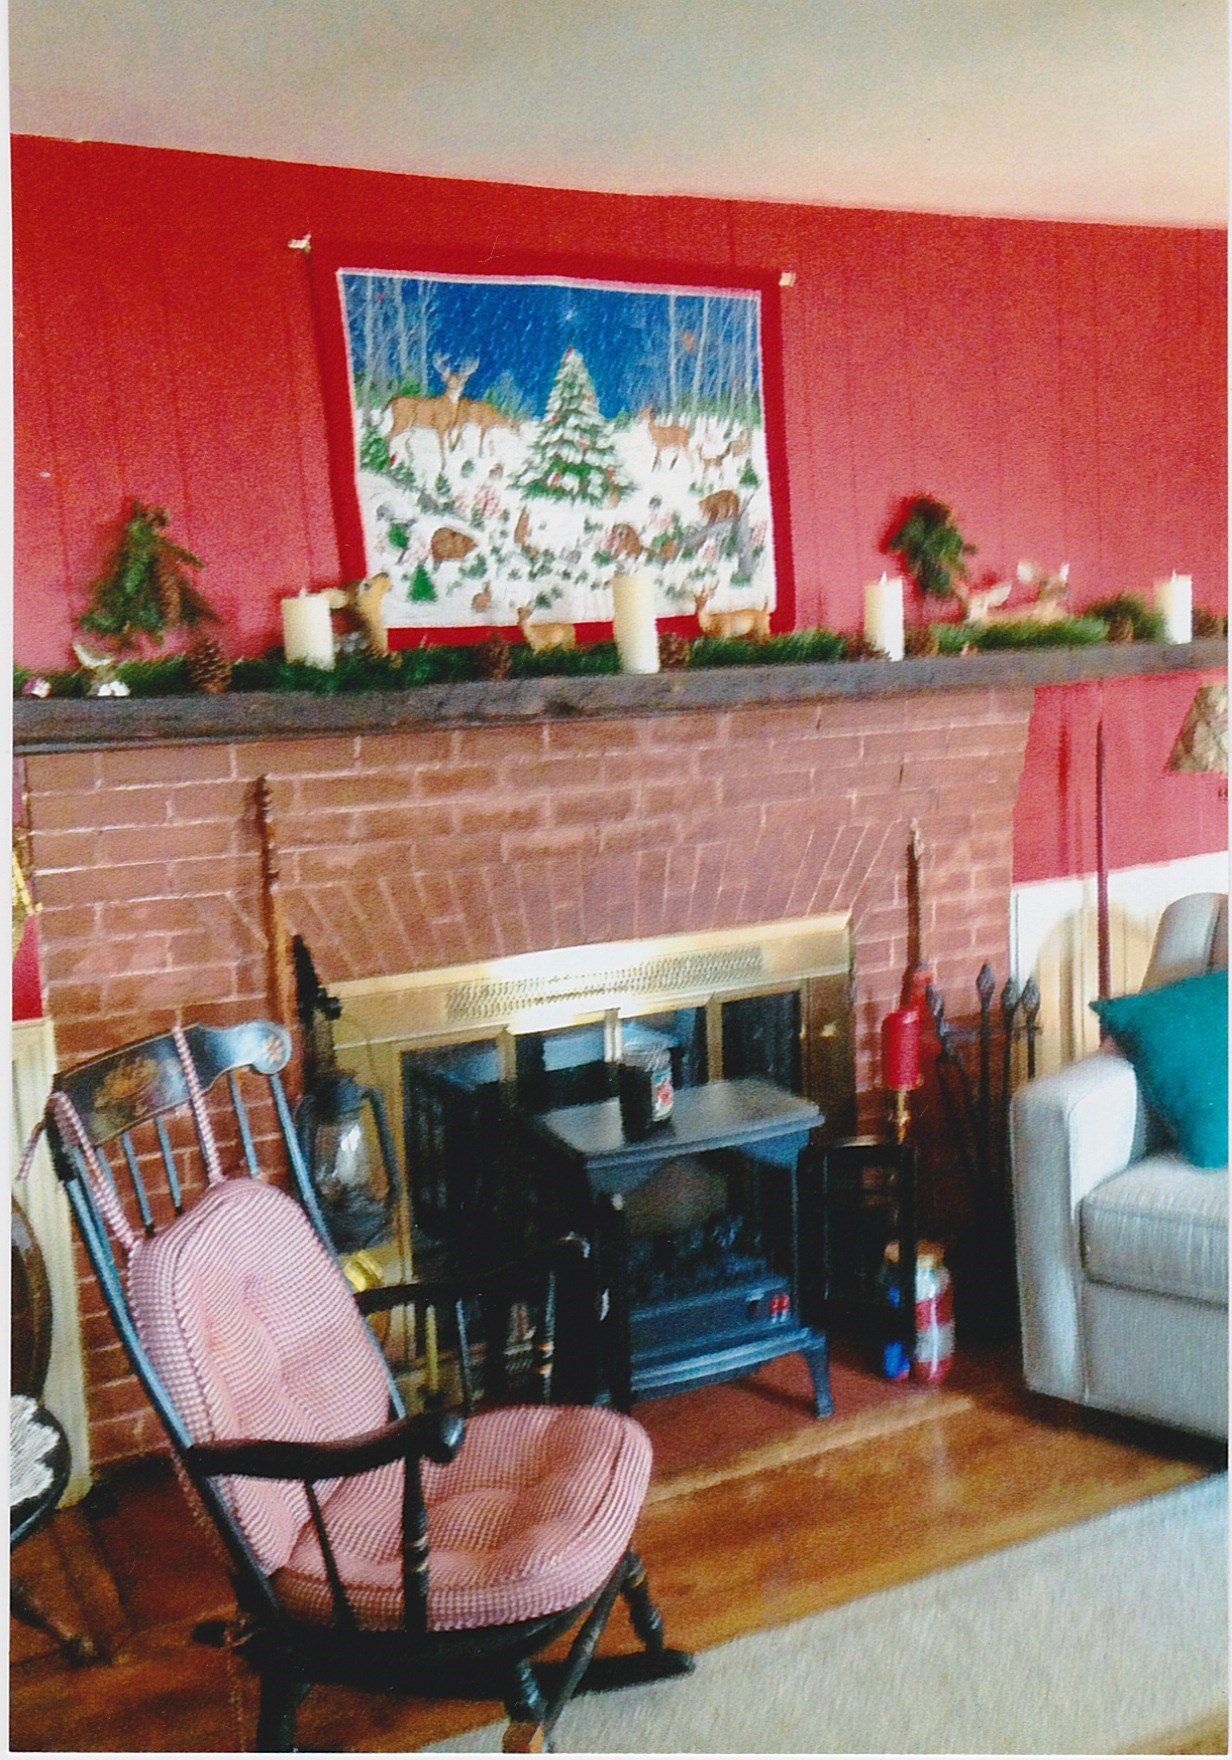 Trumbull House - Living Room fireplace - 1957